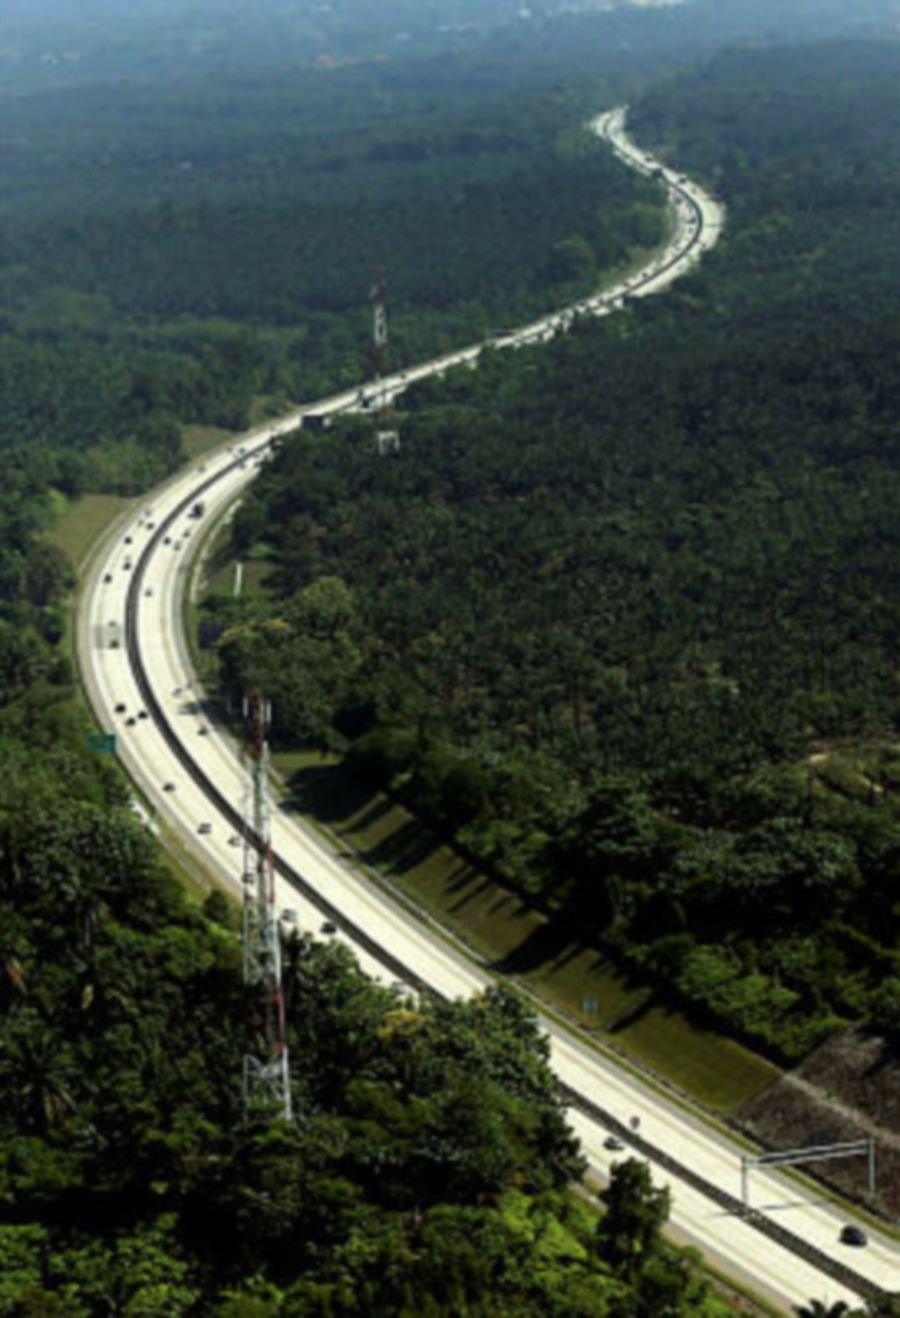 PLUS Malaysia Bhd's green initiative of planting almost half a million teak trees along the North-South Expressway (NSE) back in 1997 appears to be bearing fruit.